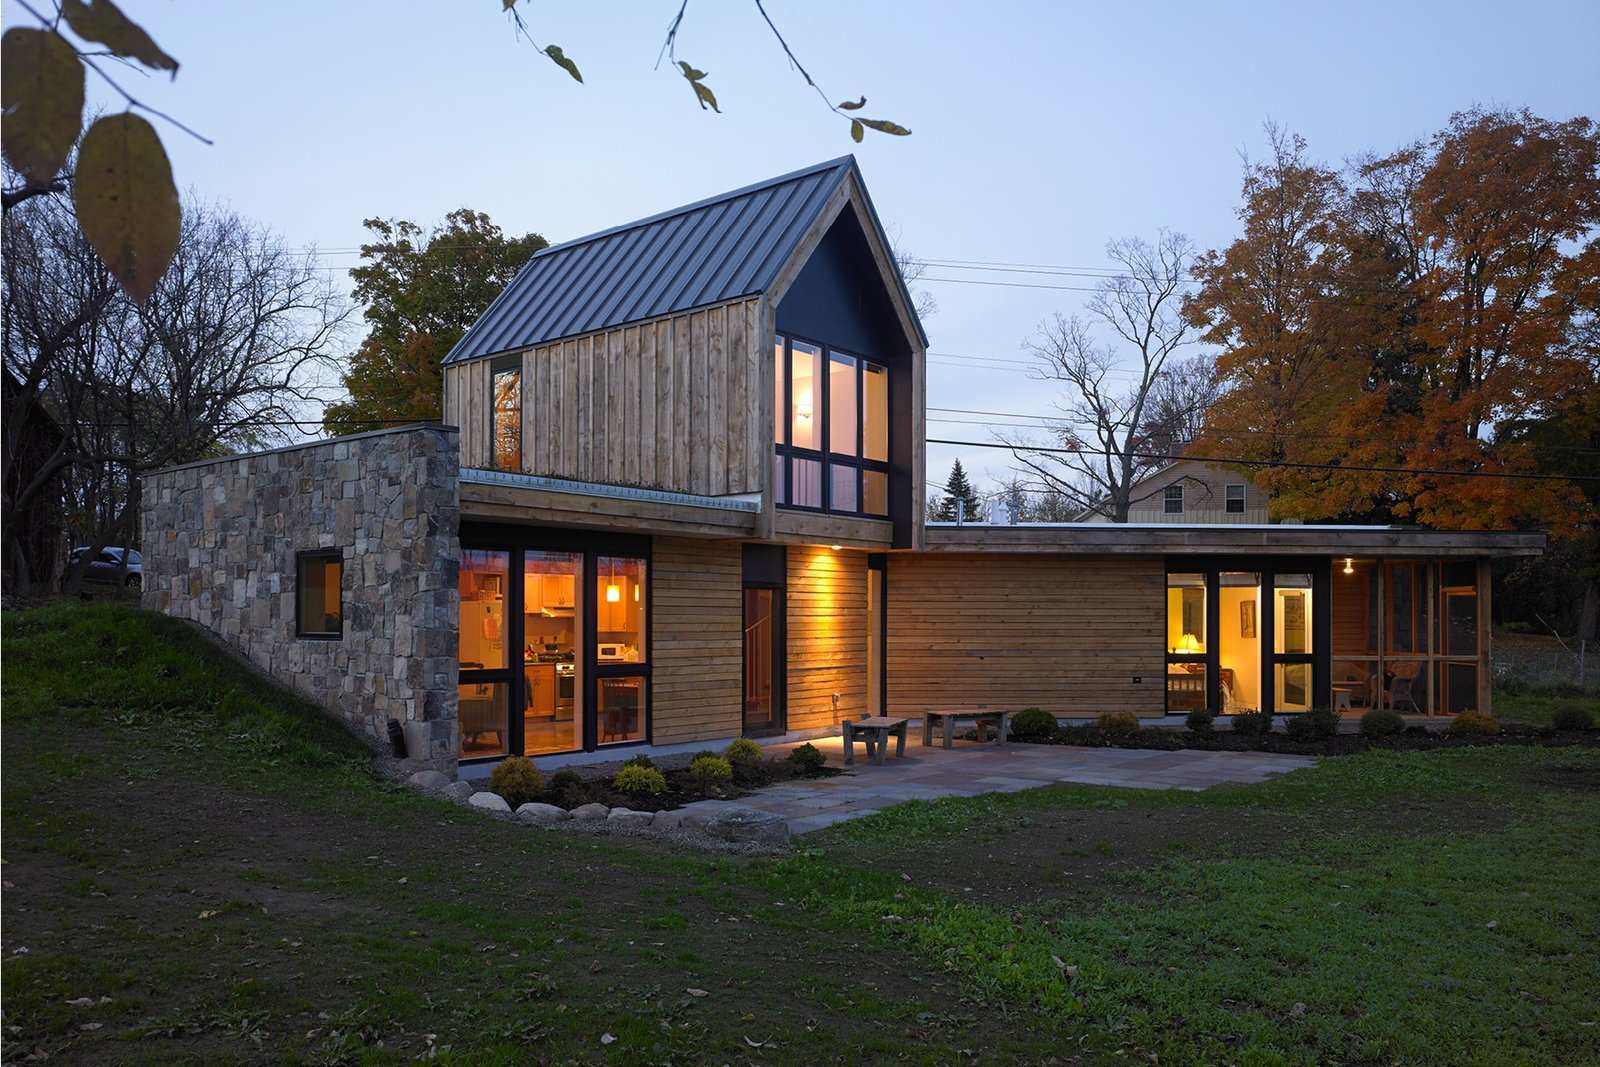 Exterior, Gable RoofLine, Metal Roof Material, House Building Type, Farmhouse Building Type, Wood Siding Material, Stone Siding Material, and Flat RoofLine  Best Photos from GRANNYcottage